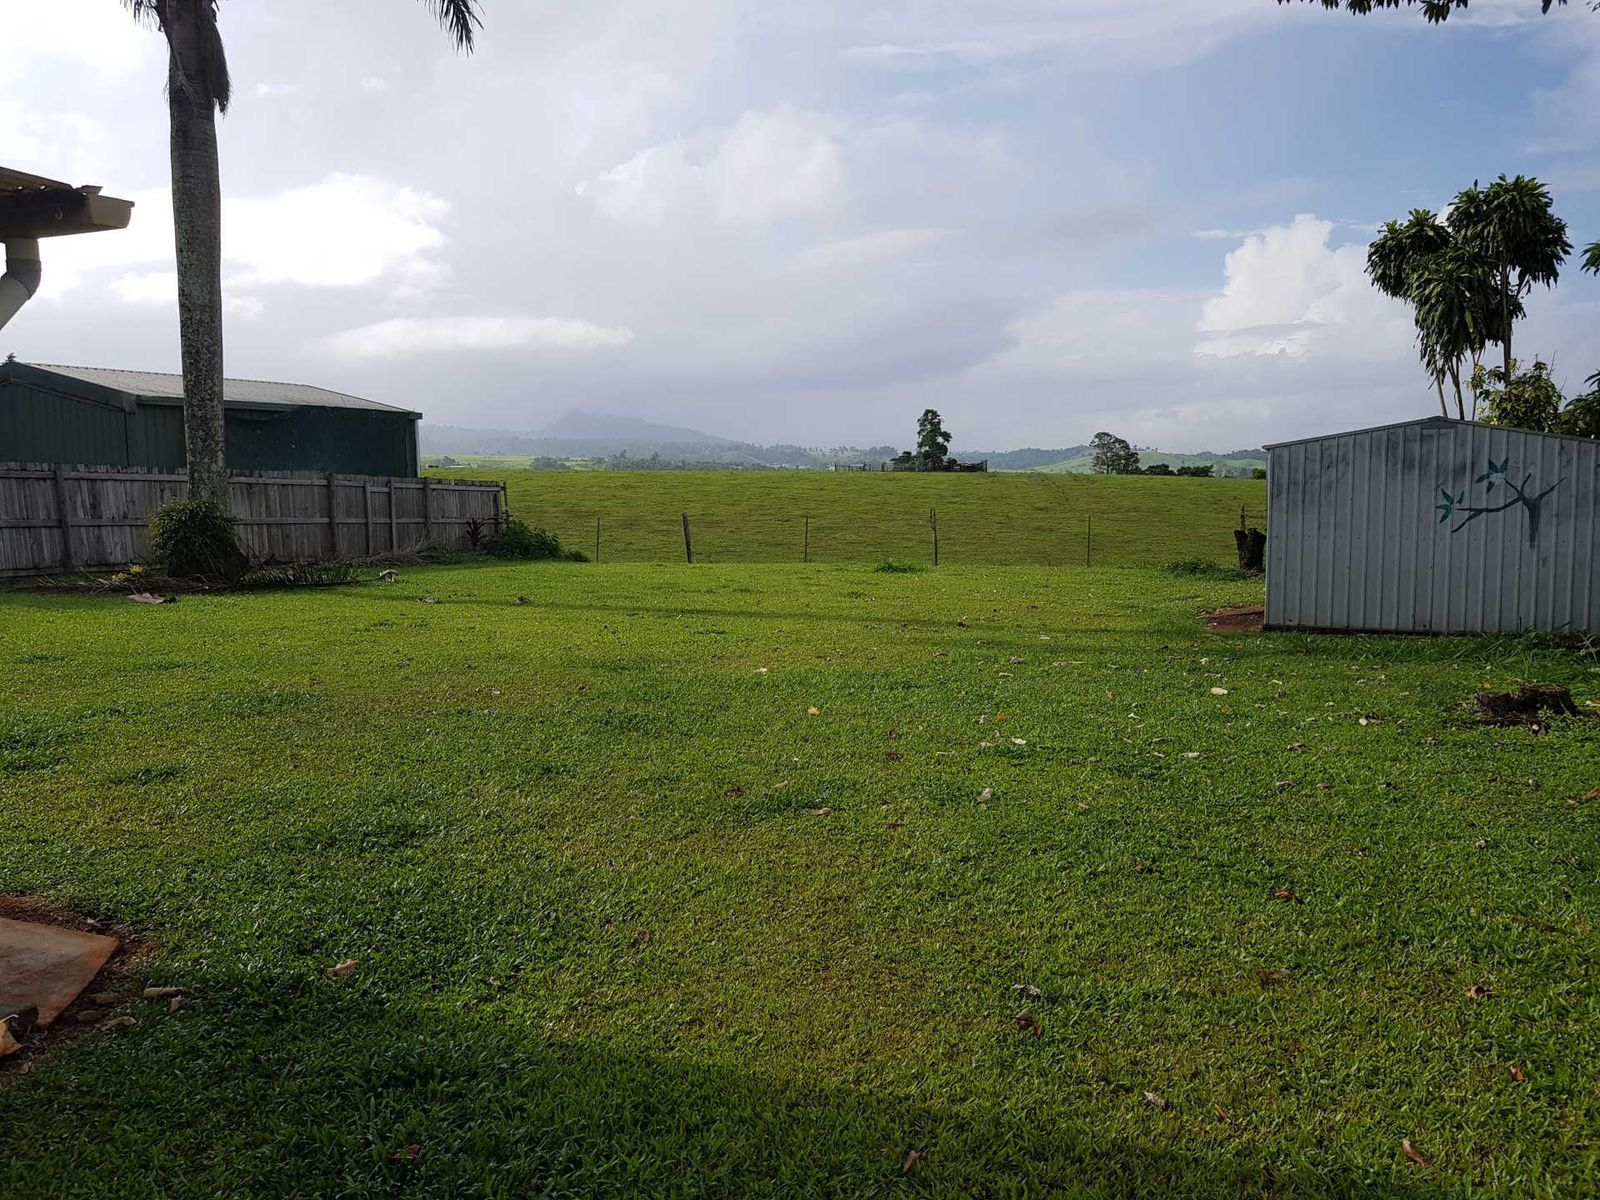 342 PALMERSTON HIGHWAY, Stoters Hill, QLD 4860